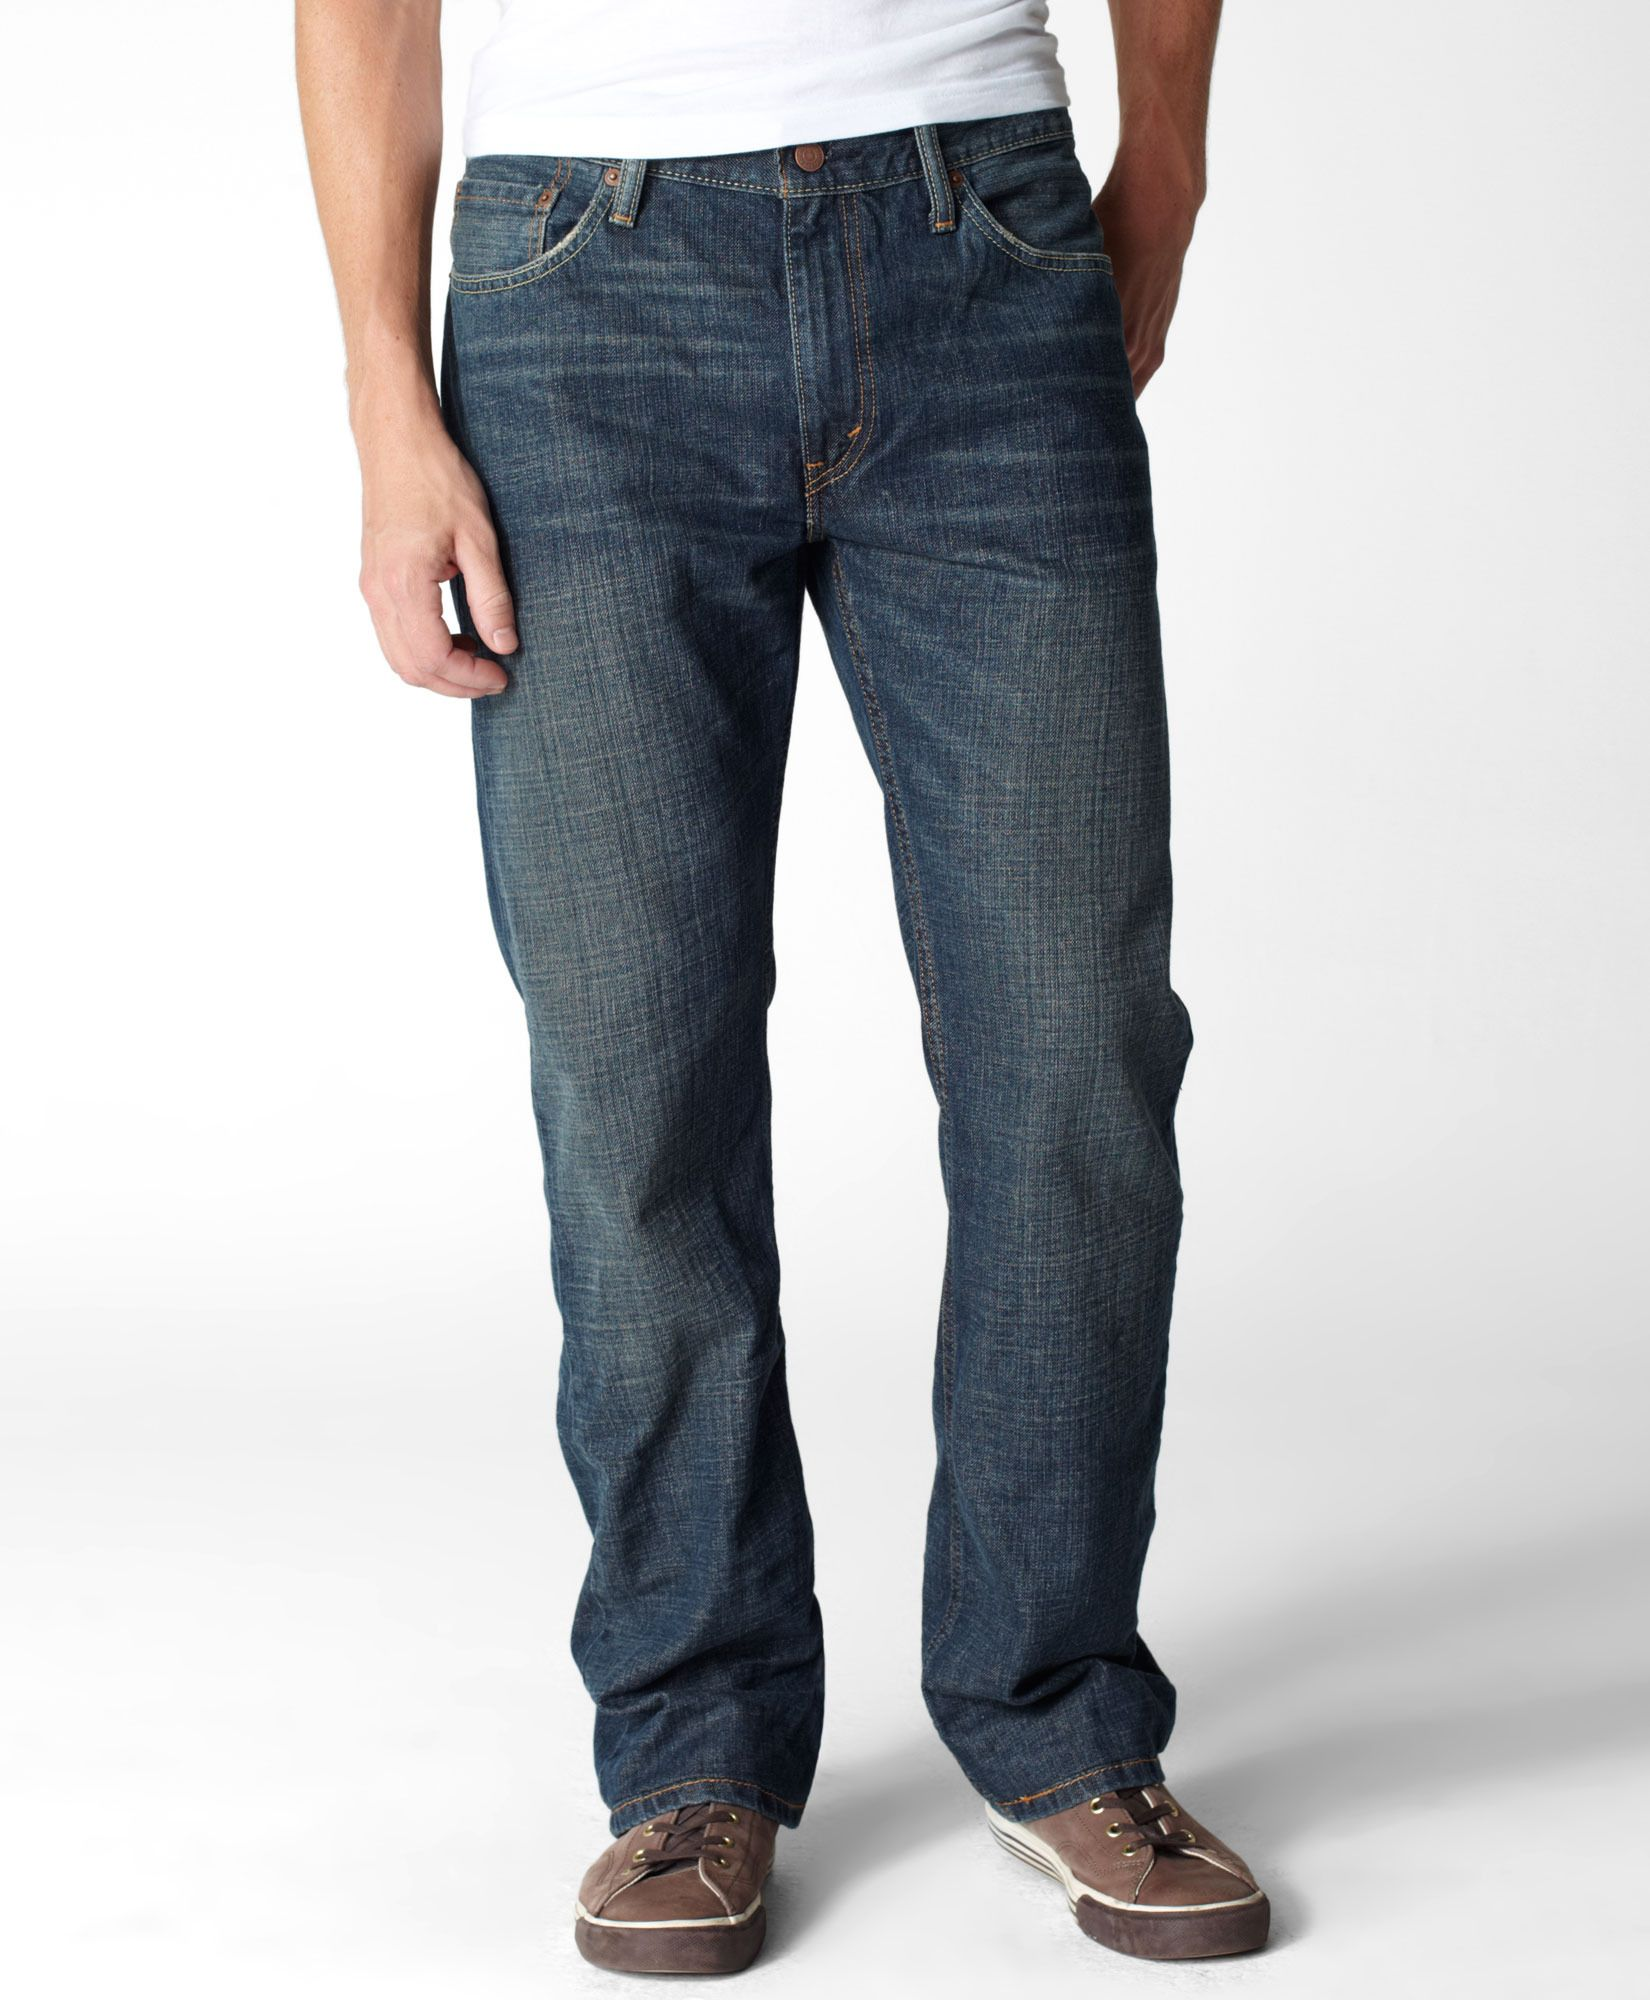 482c150156b88 505™ Regular Fit Jeans | Clothes - Have | Jeans, Levi 501s, Casual ...